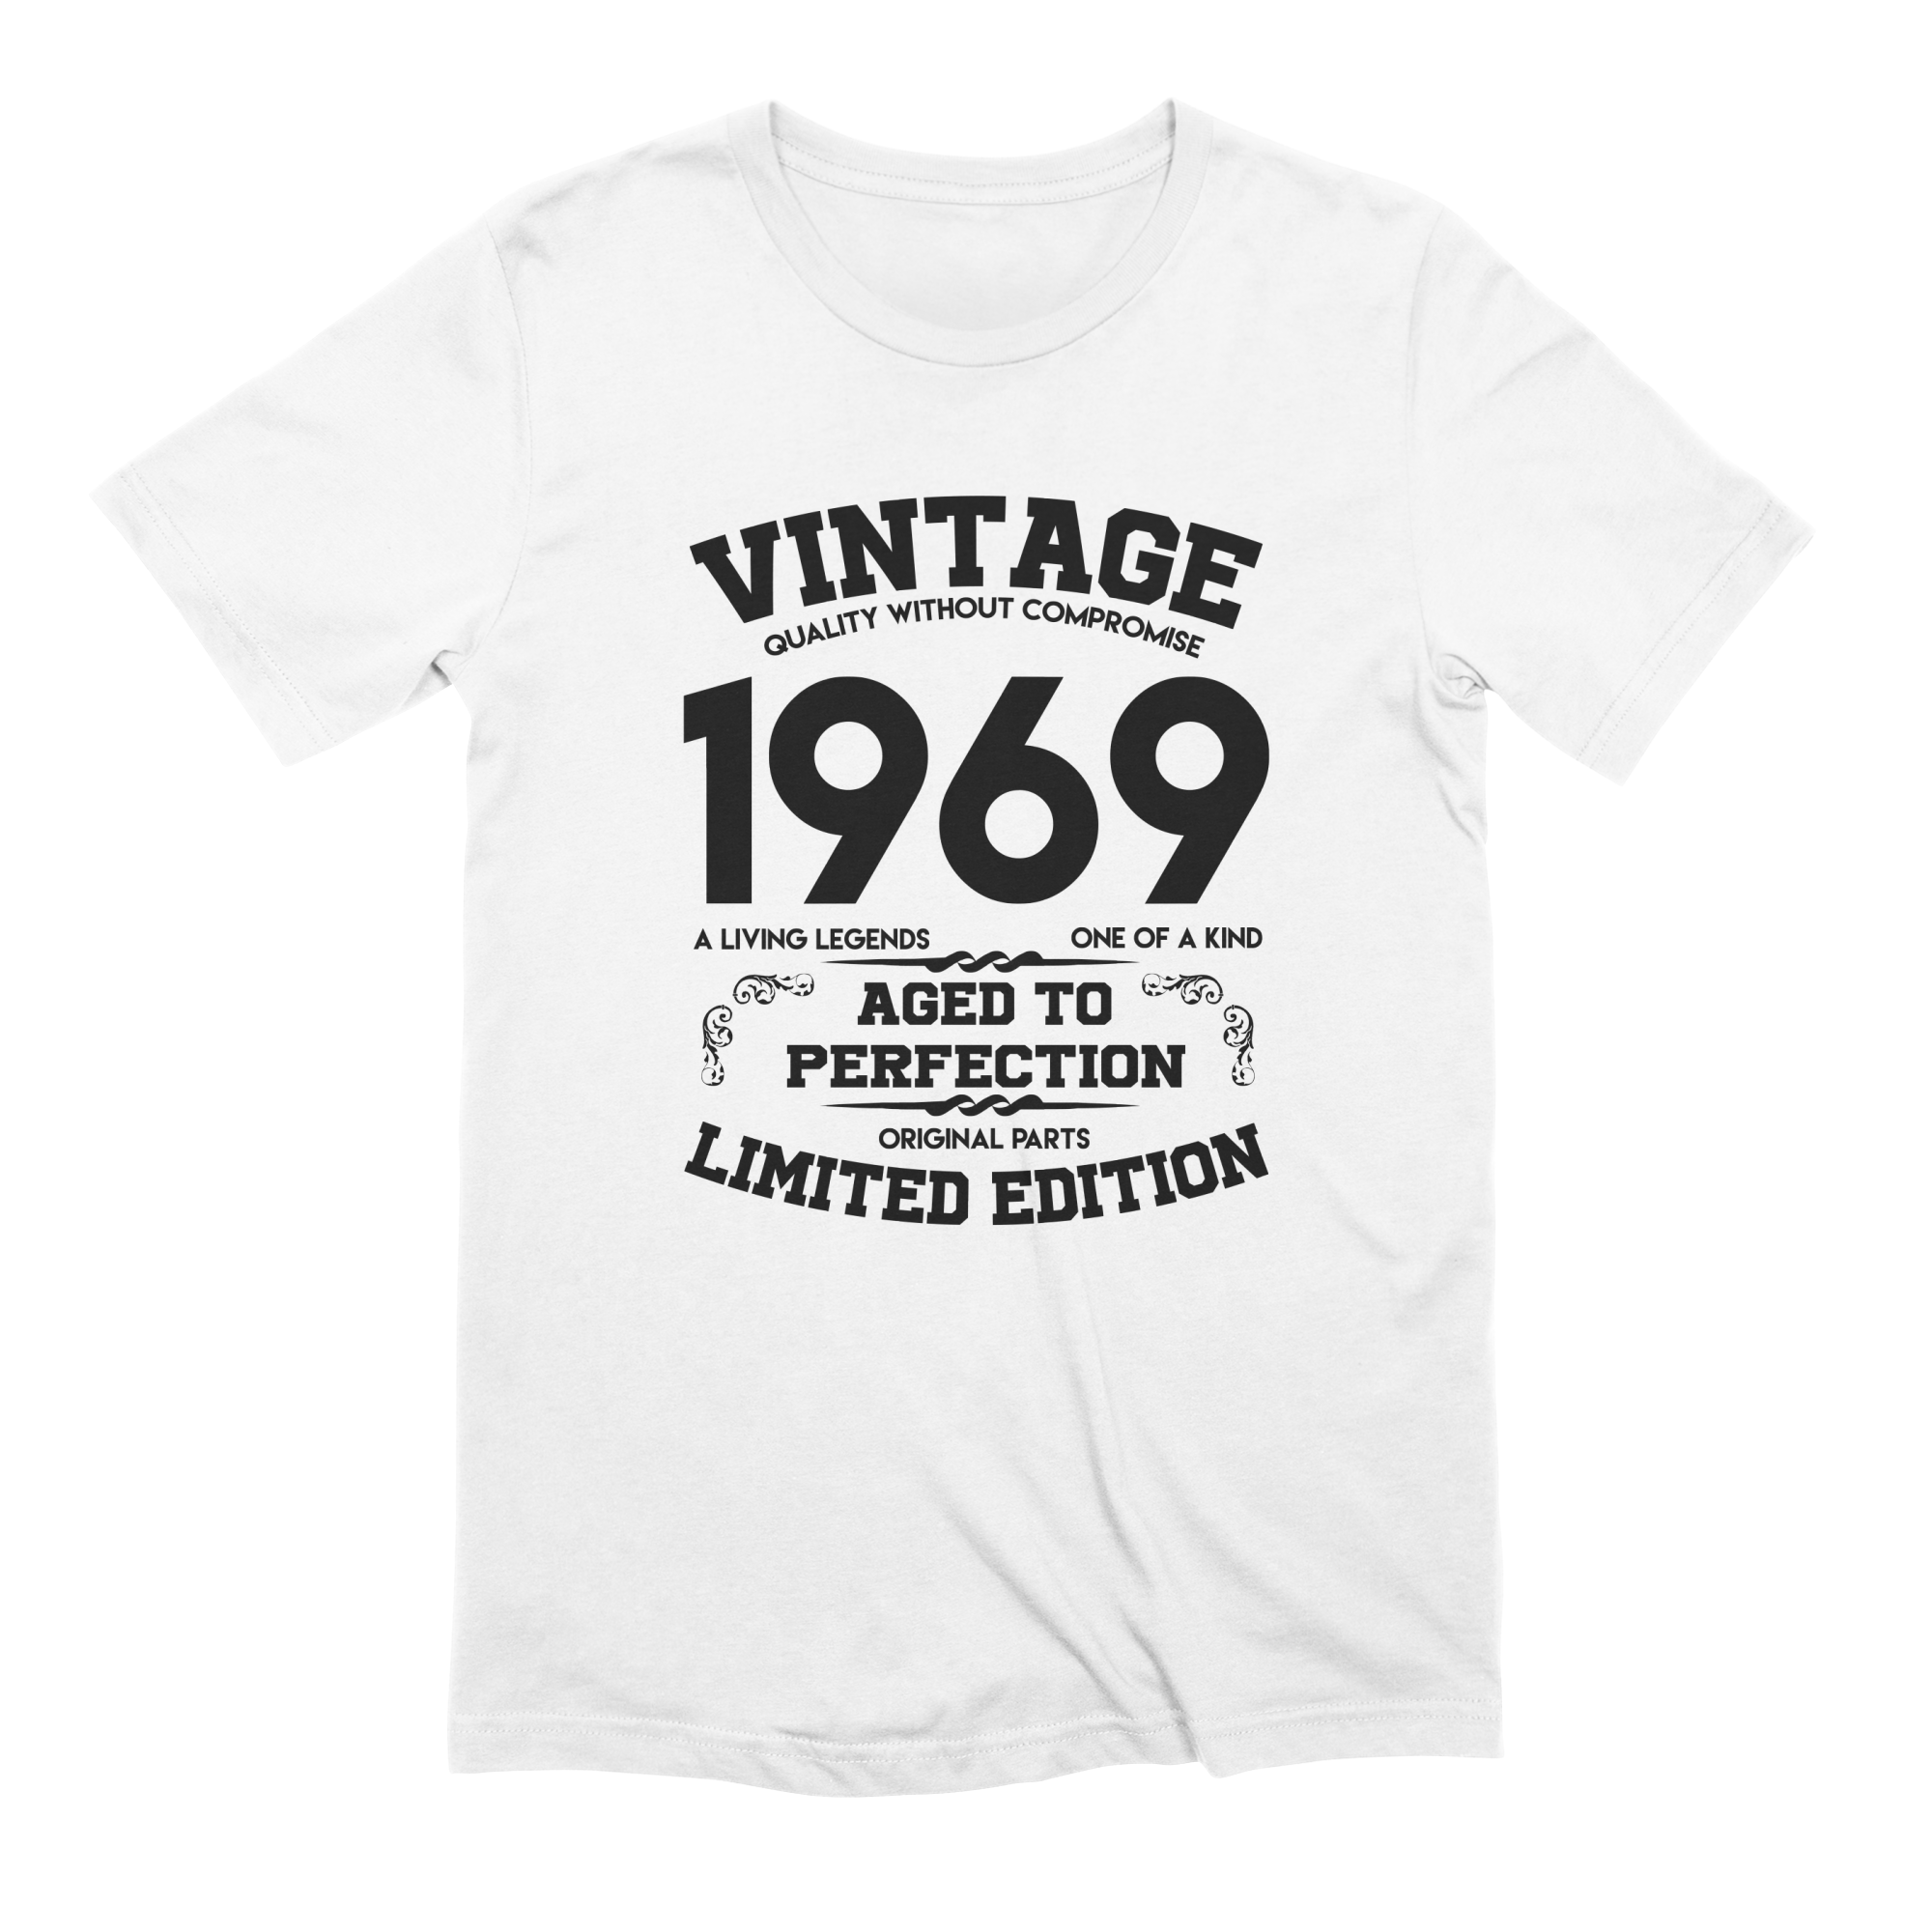 785270af Soega vintage-quality-without-compromise-1969-aged-to-perfection -original-parts-limited-edition-1 mens